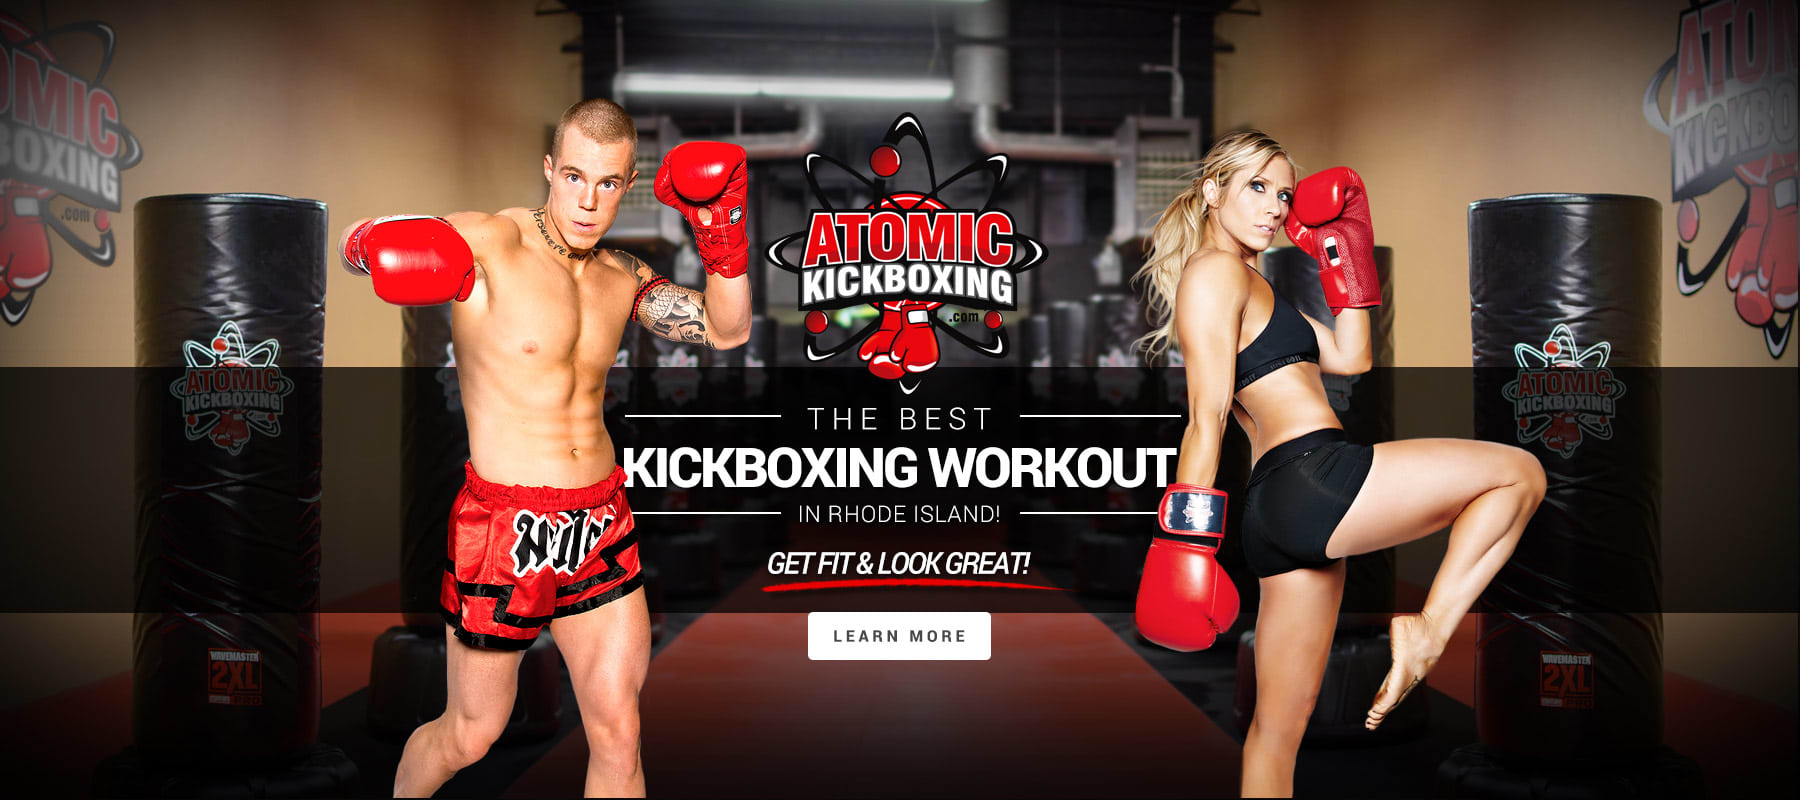 kickboxing learning great way If you want your child to mature and development at a more rapid pace, then putting them into a kickboxing class will certainly help the class will enable them to get in good shape, and help them to develop coordination, balance, self-discipline, and more.